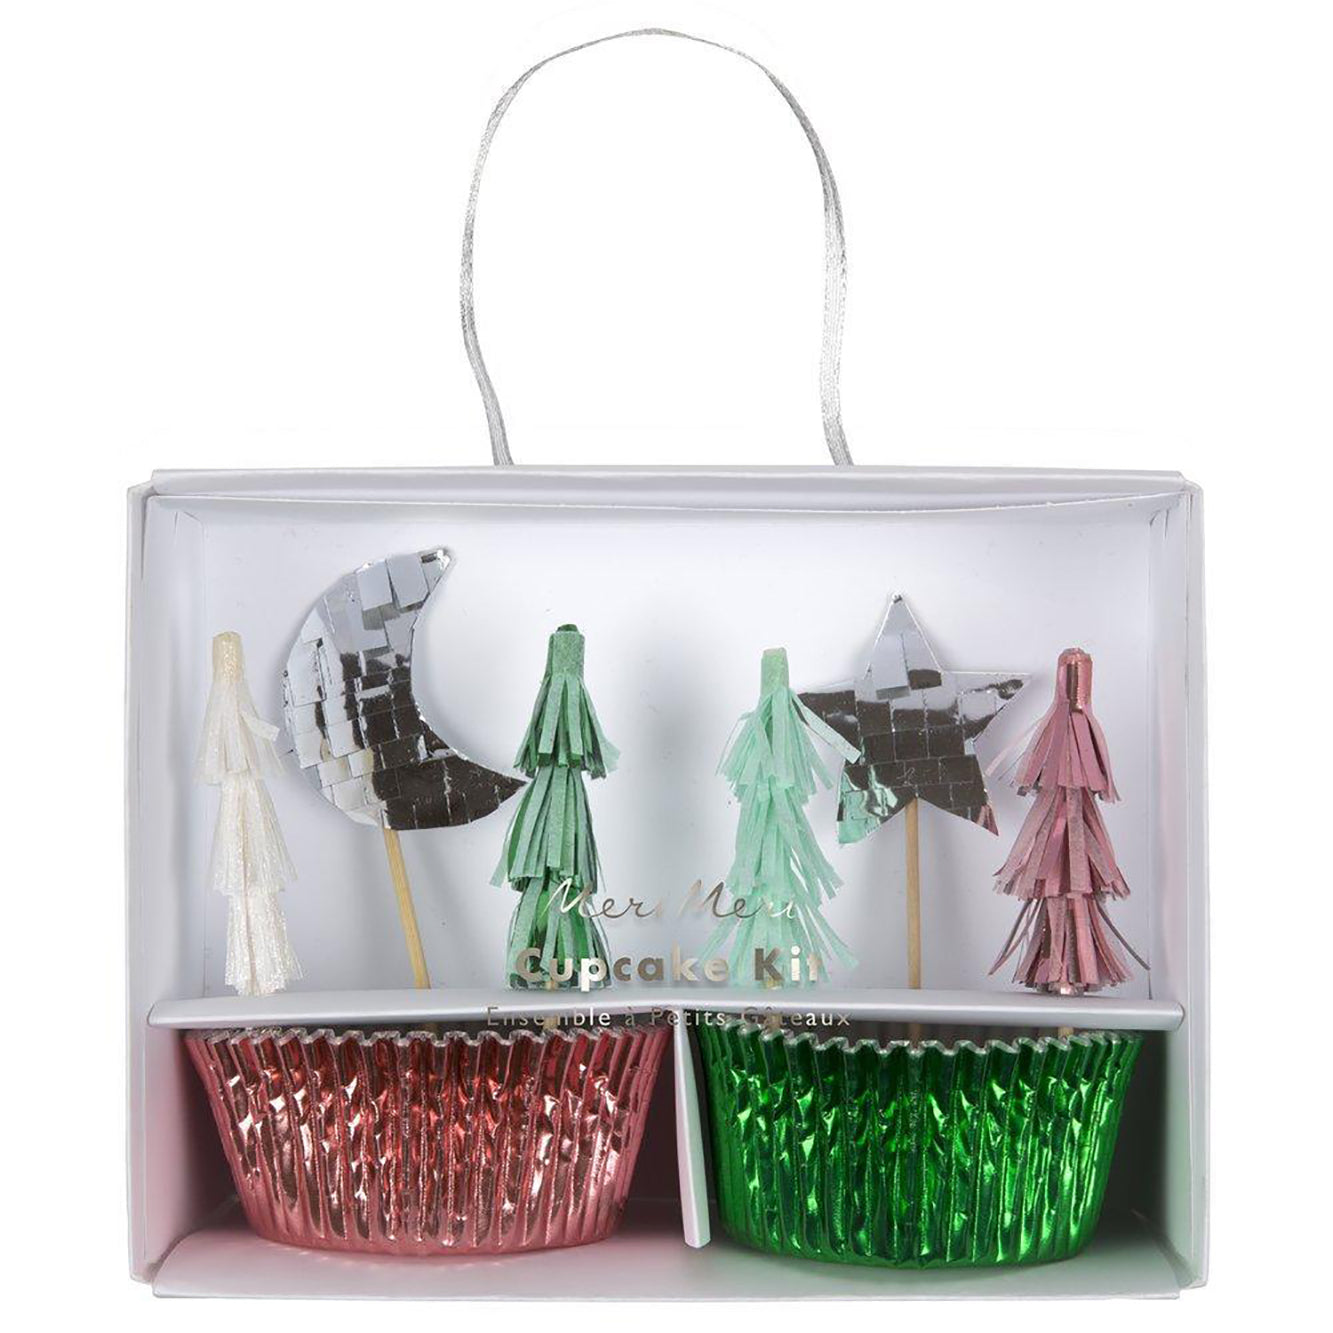 Festive Tree Cupcake Kit - The Pretty Prop Shop Parties, Auckland New Zealand